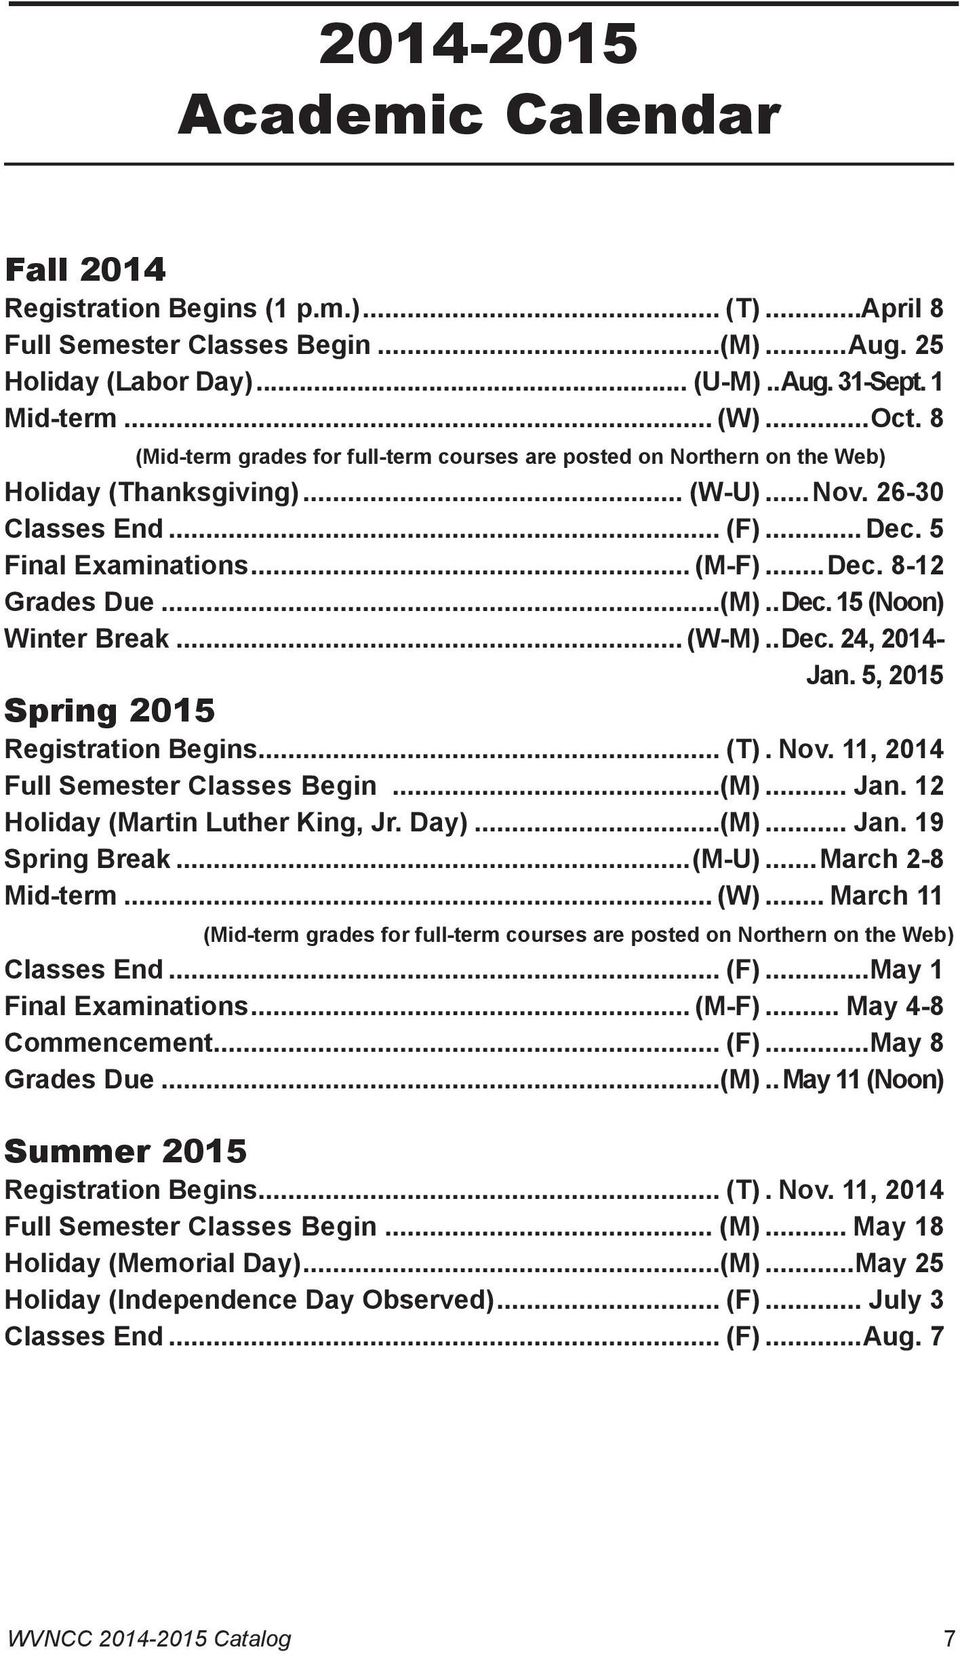 5, 2015 Spring 2015 Registration Begins... (T).. Nov. 11, 2014 Full Semester Classes Begin...(M)... Jan. 12 Holiday (Martin Luther King, Jr. Day)...(M)... Jan. 19 Spring Break...(M-U).